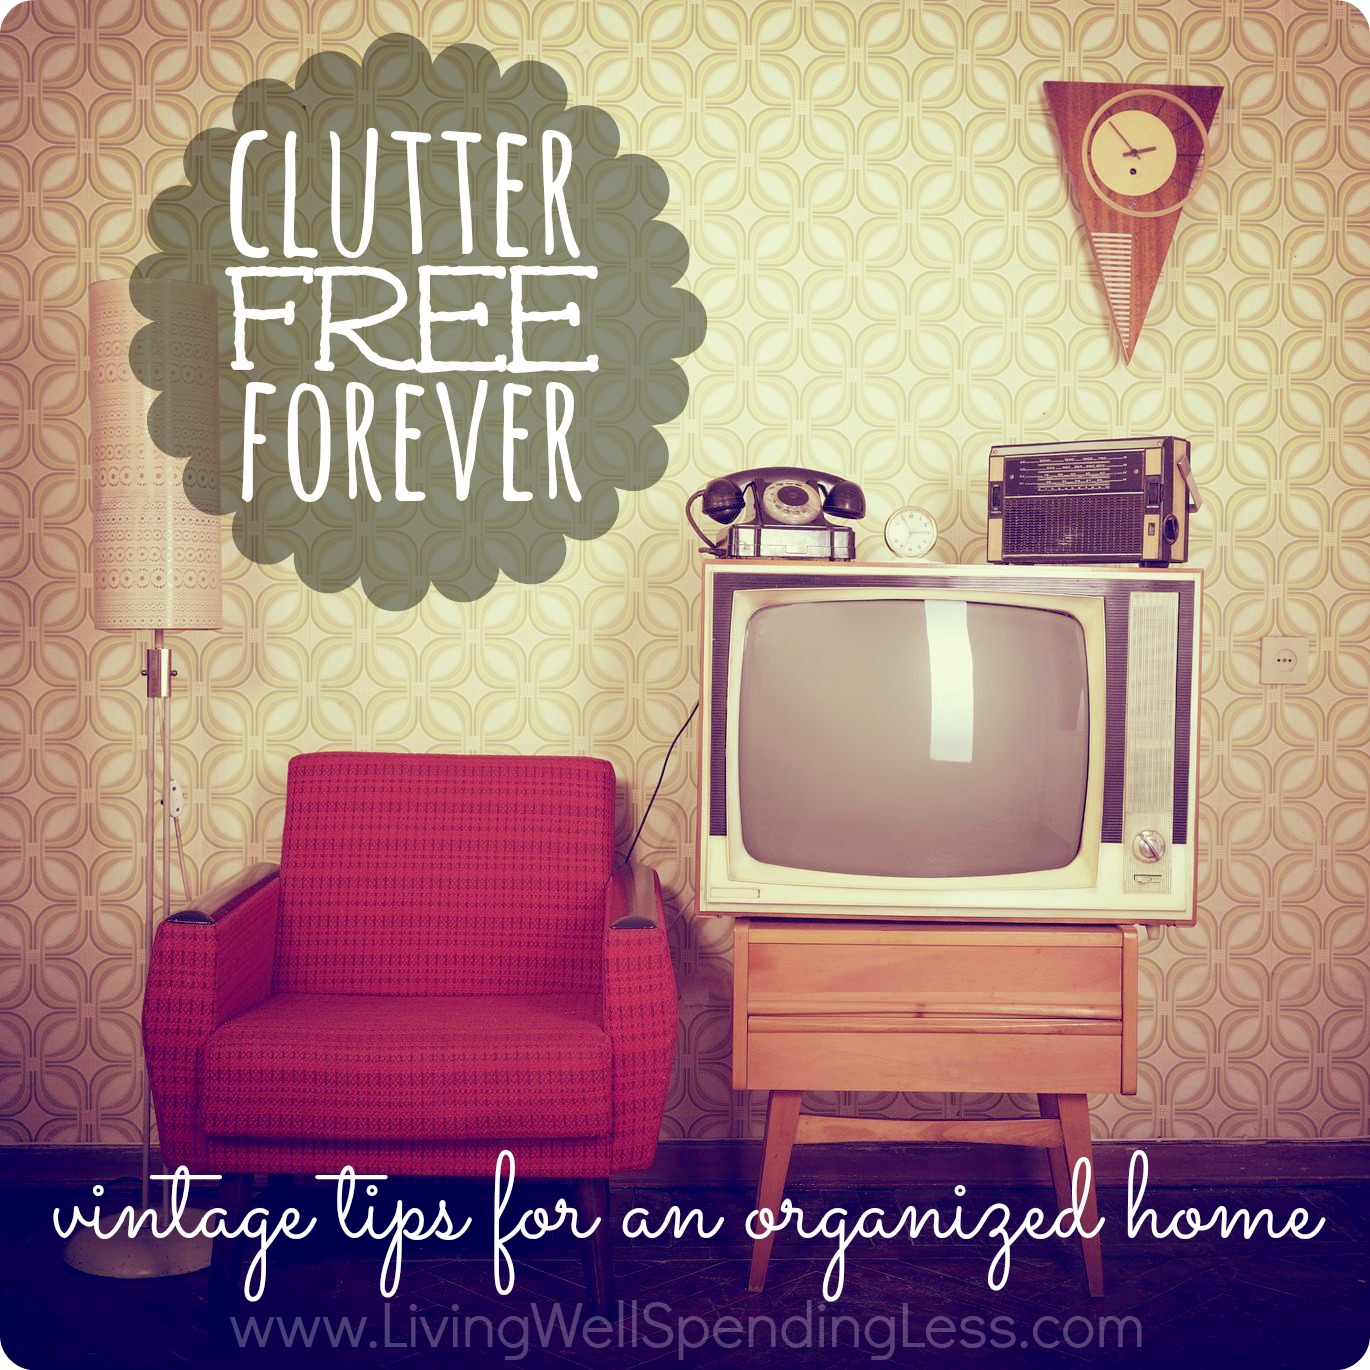 Make Your Home Clutter Free Forever